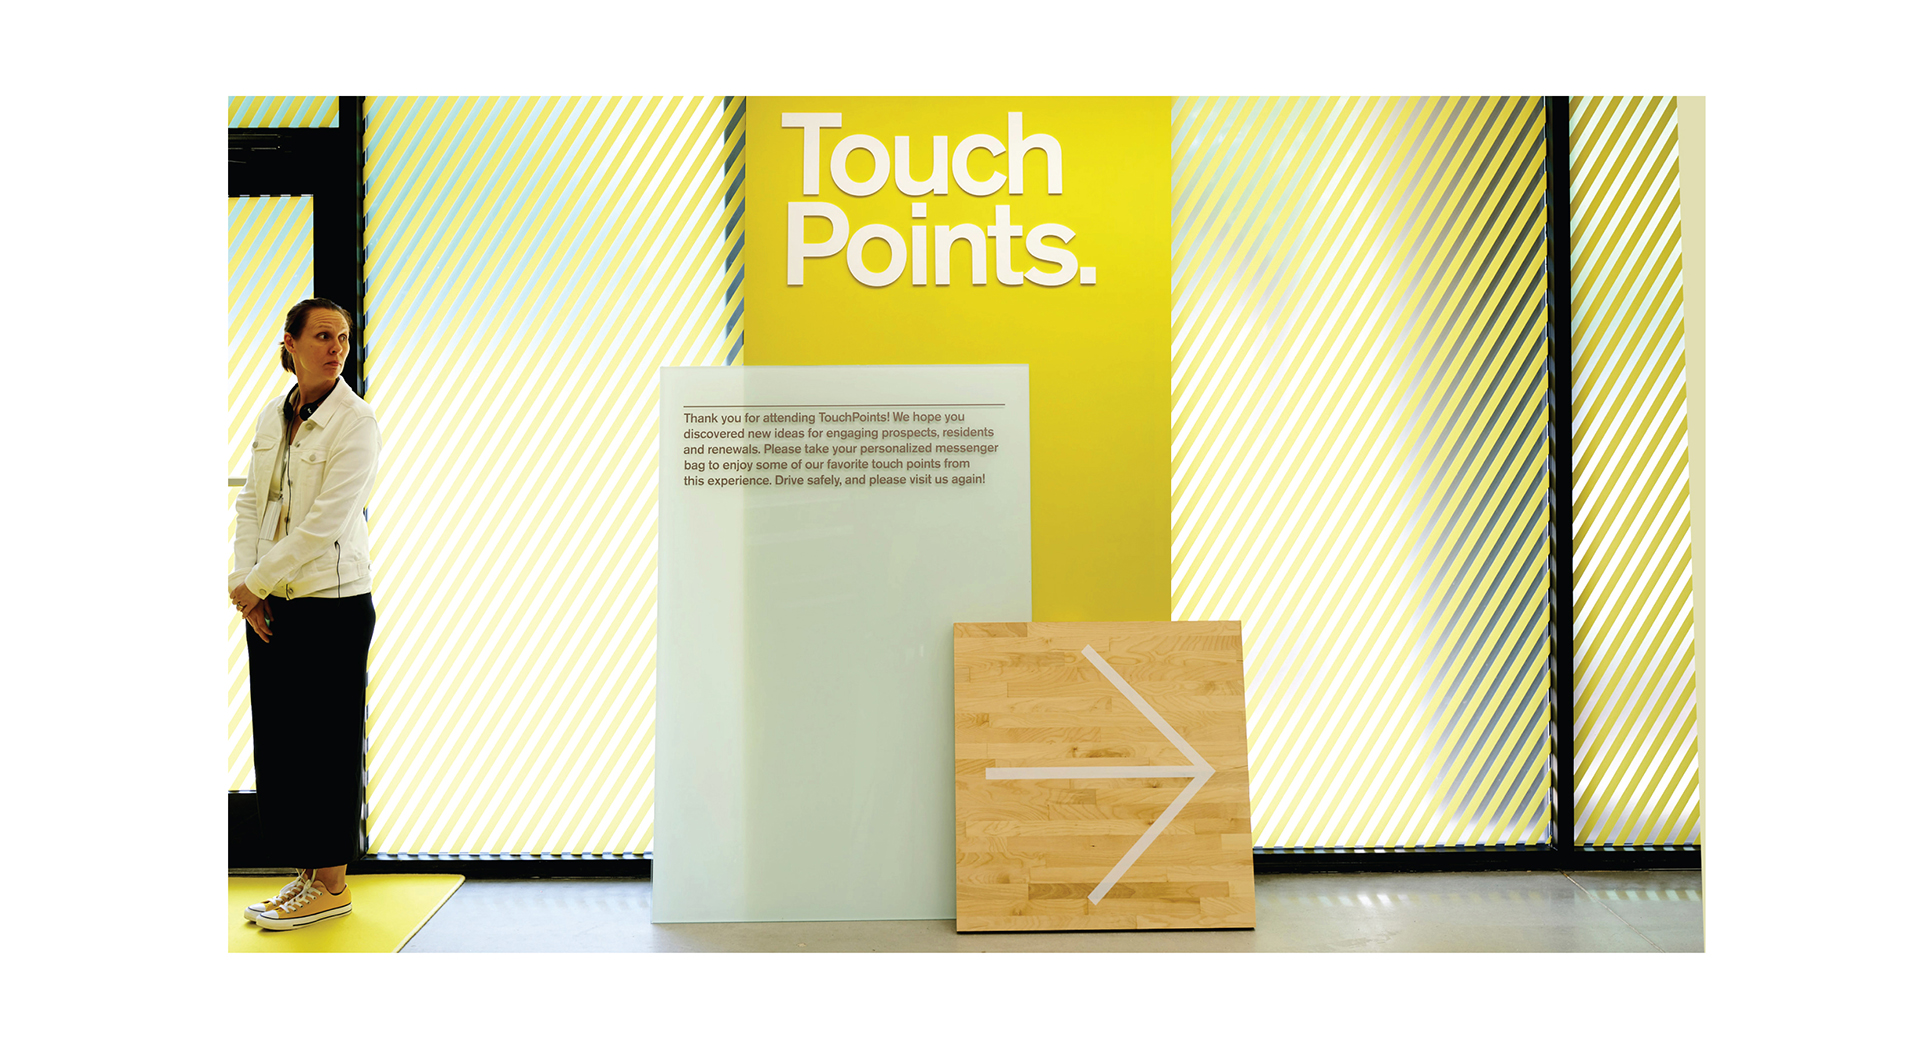 Creating Brand TouchPoints